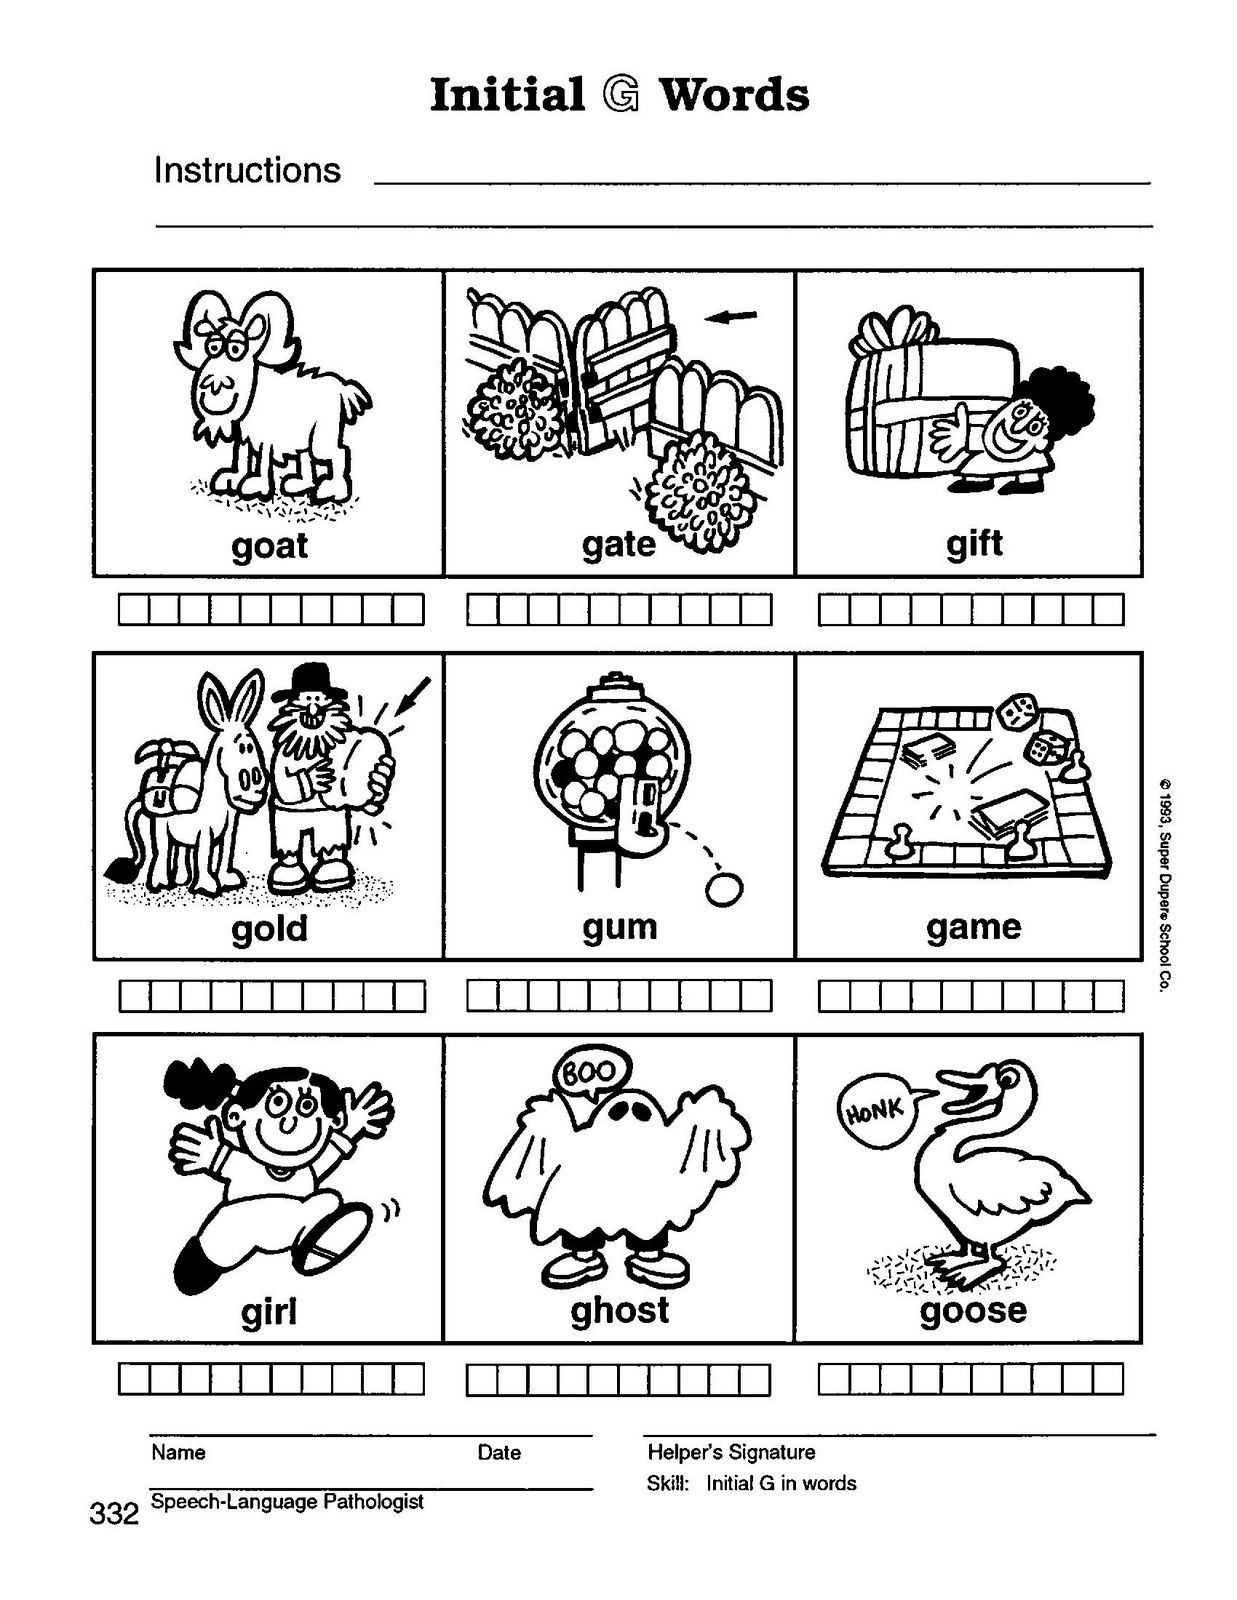 Worksheet Preschool Words worksheet i words preschool wosenly free speech home practice materials speech